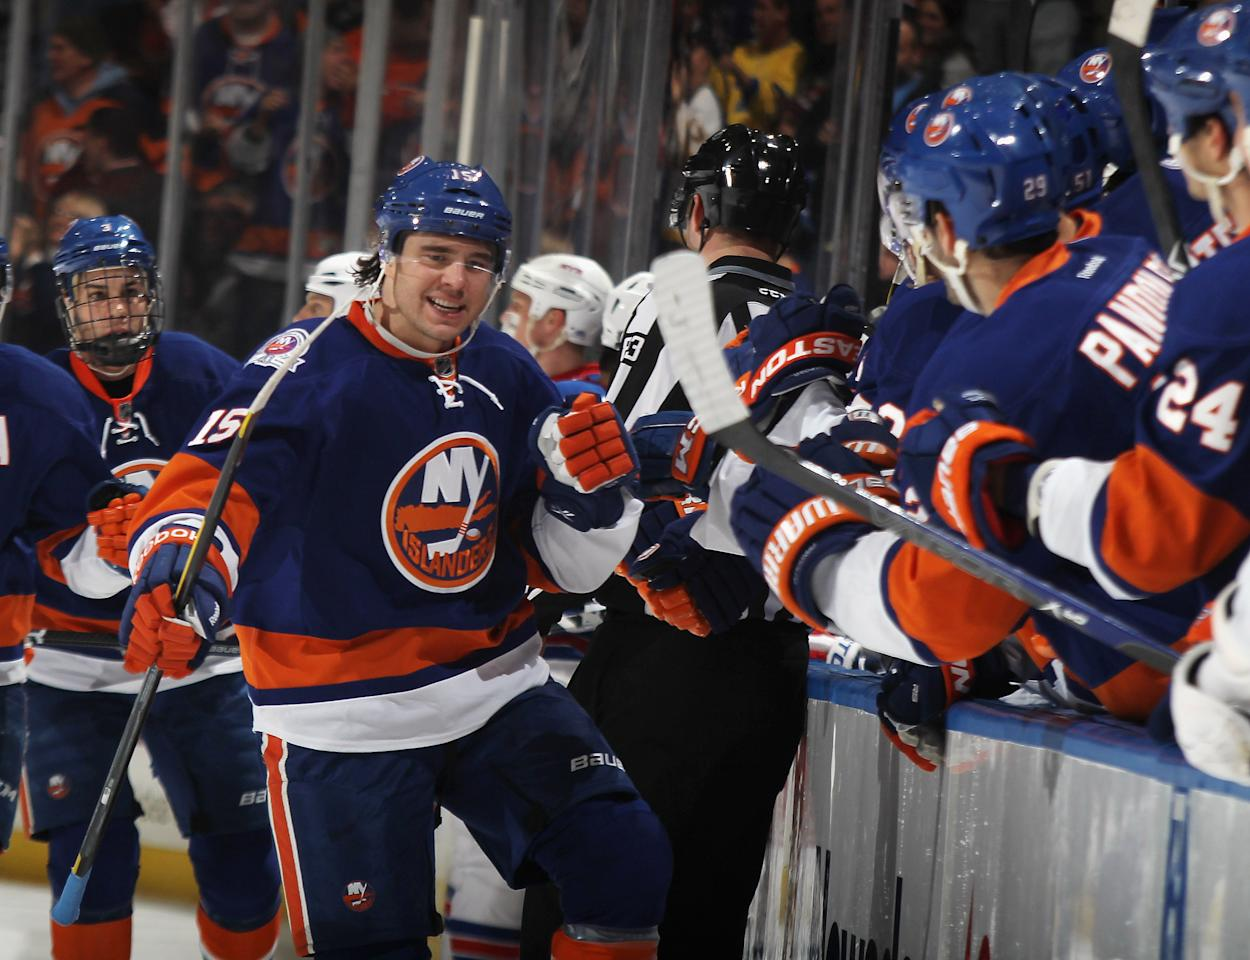 UNIONDALE, NY - FEBRUARY 24: P.A. Parenteau #15 of the New York Islanders celebrates his first period goal against the New York Rangers at the Nassau Veterans Memorial Coliseum on February 24, 2012 in Uniondale, New York. The Islanders defeated the Rangers 4-3 in the shootout. (Photo by Bruce Bennett/Getty Images)